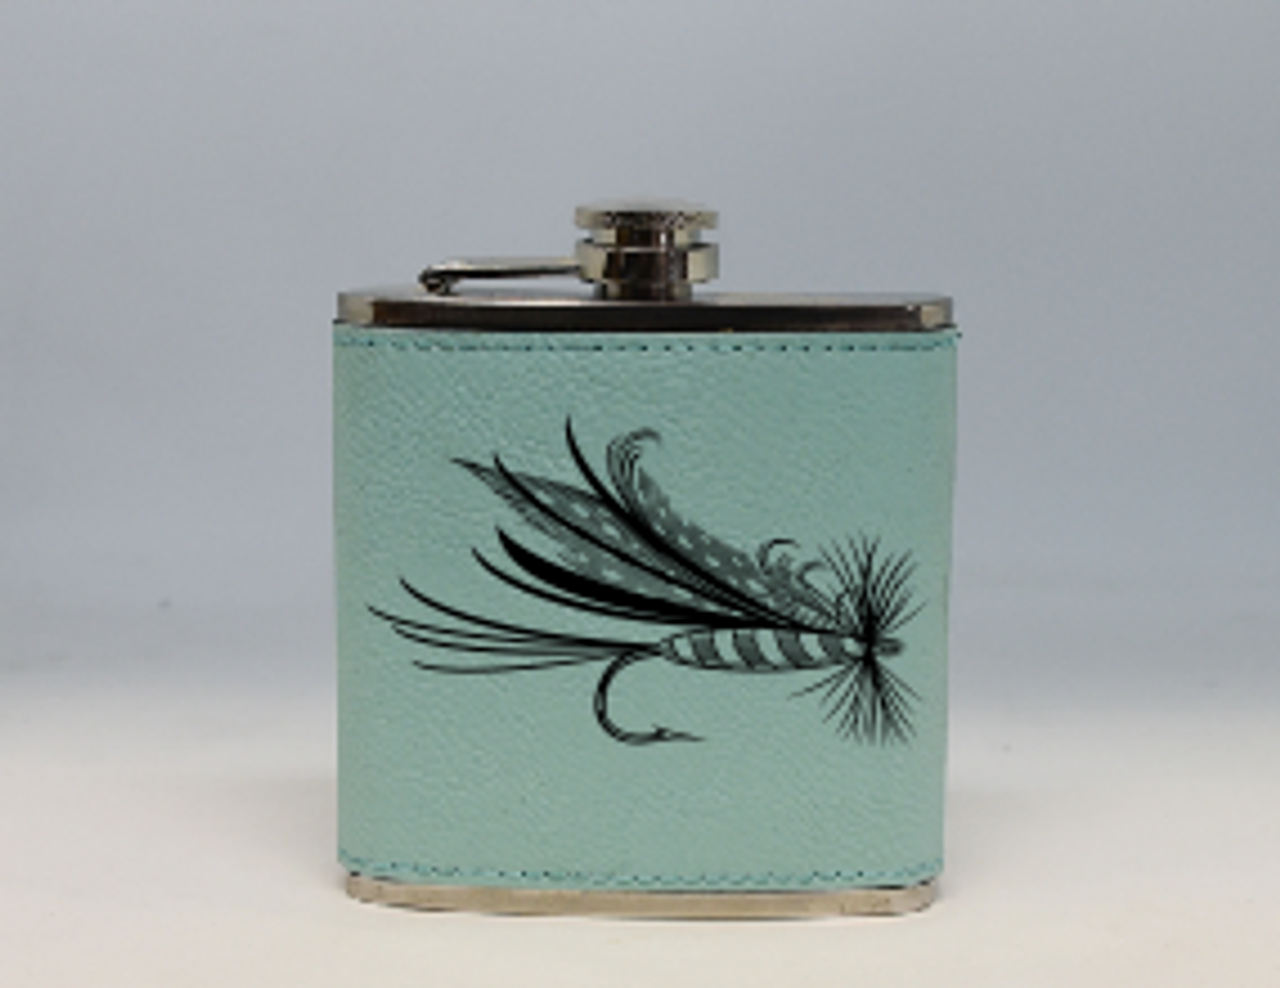 Teal Fly Flask